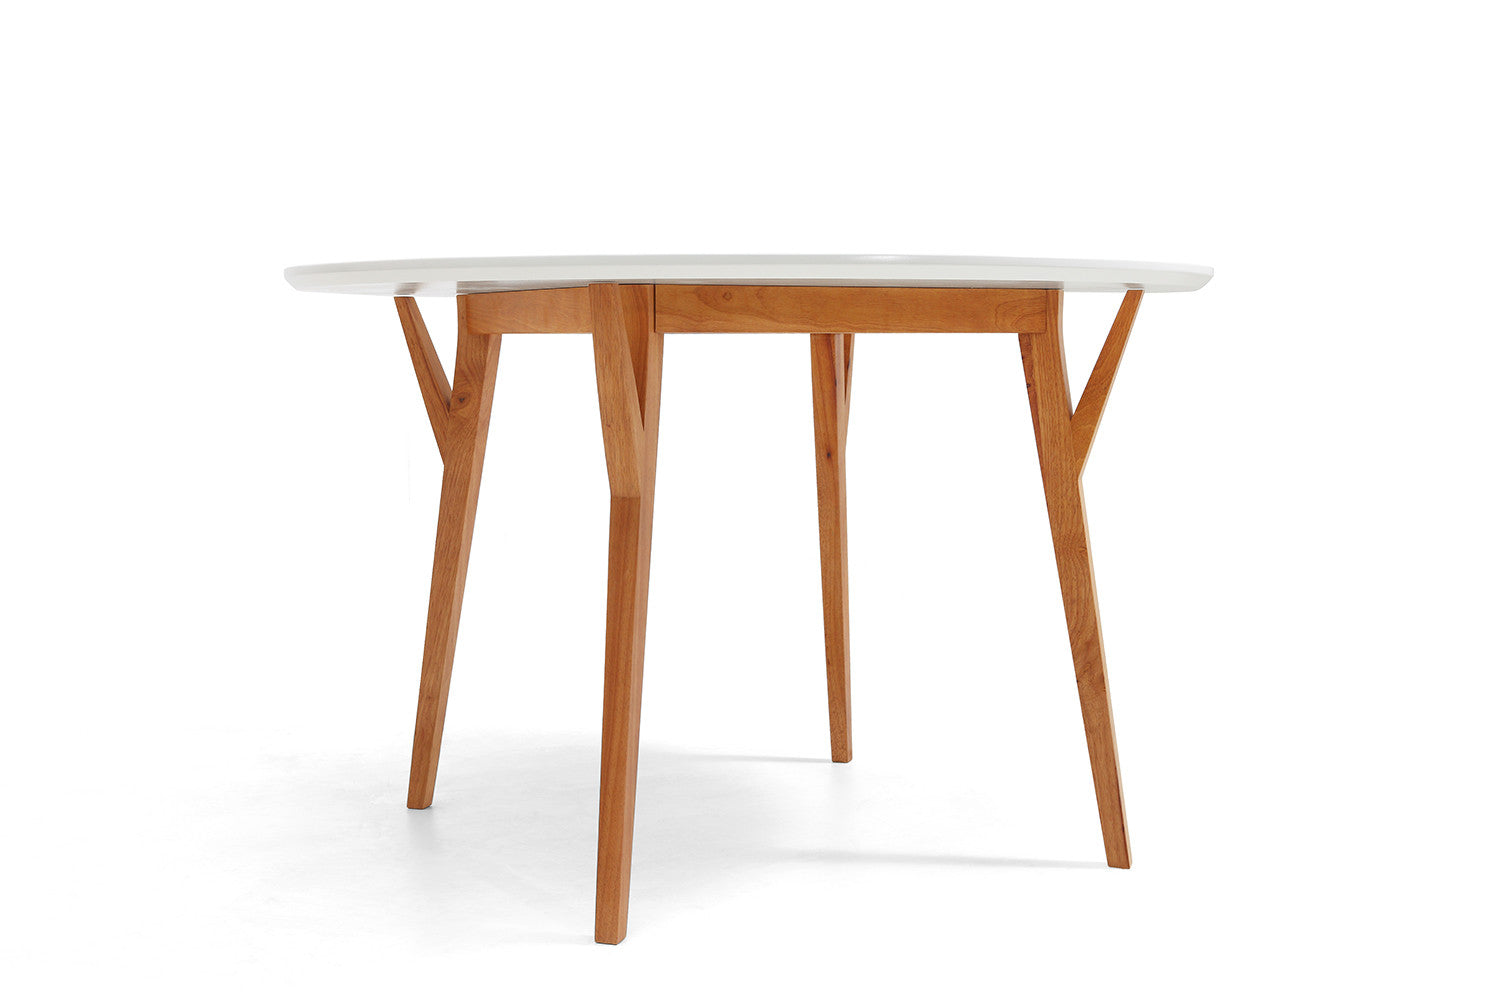 Table de salle manger ronde design scandinave moesa for Table salle manger habitat